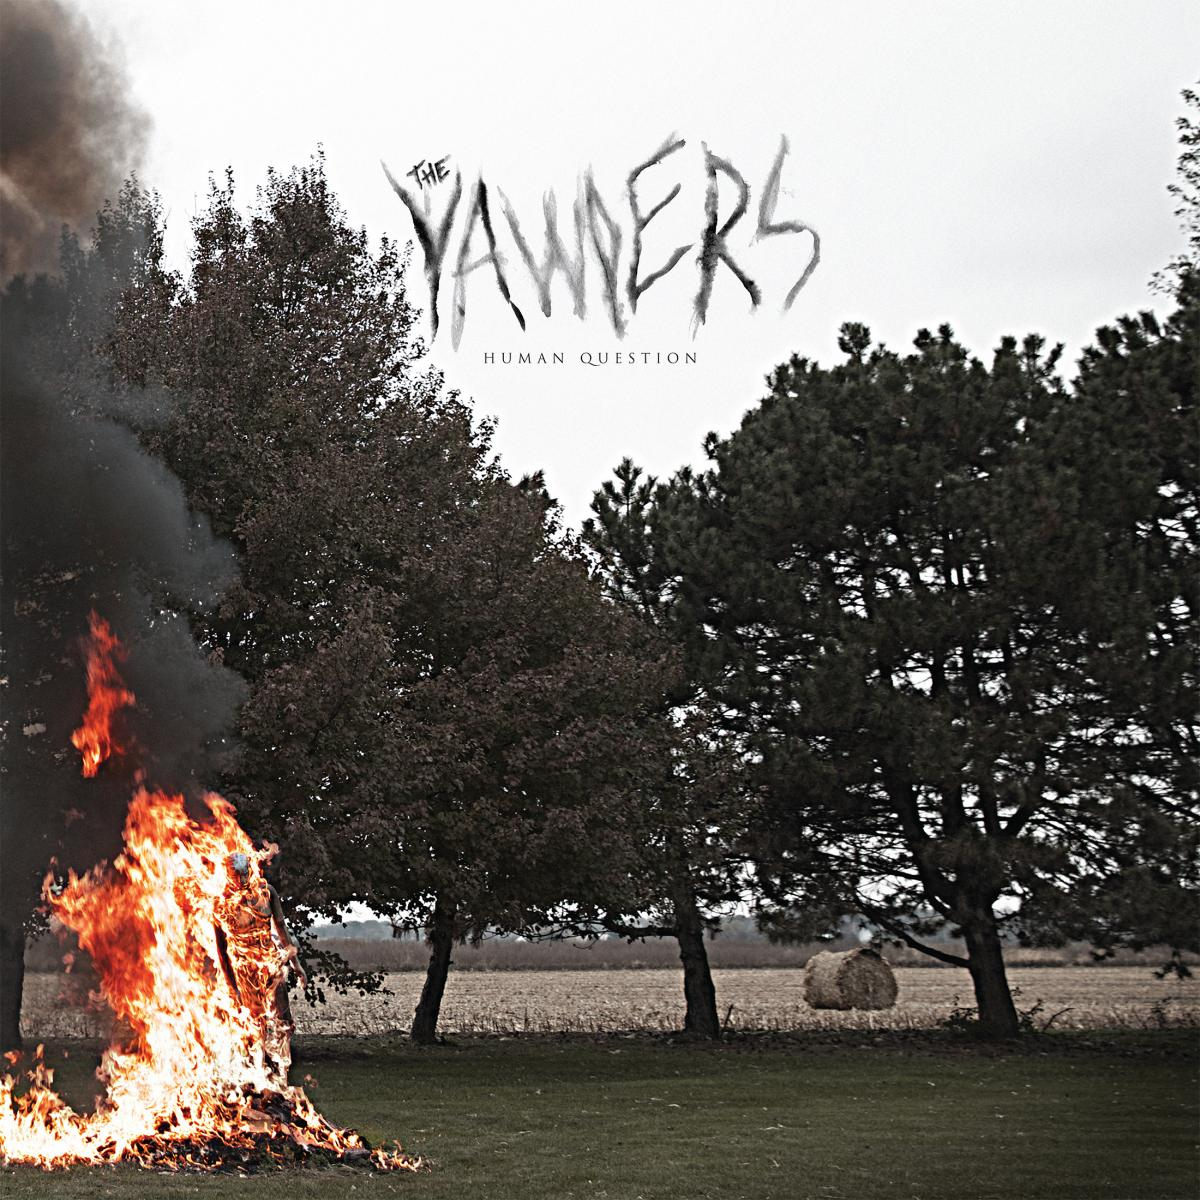 The Yawpers Human Question Album Artwork